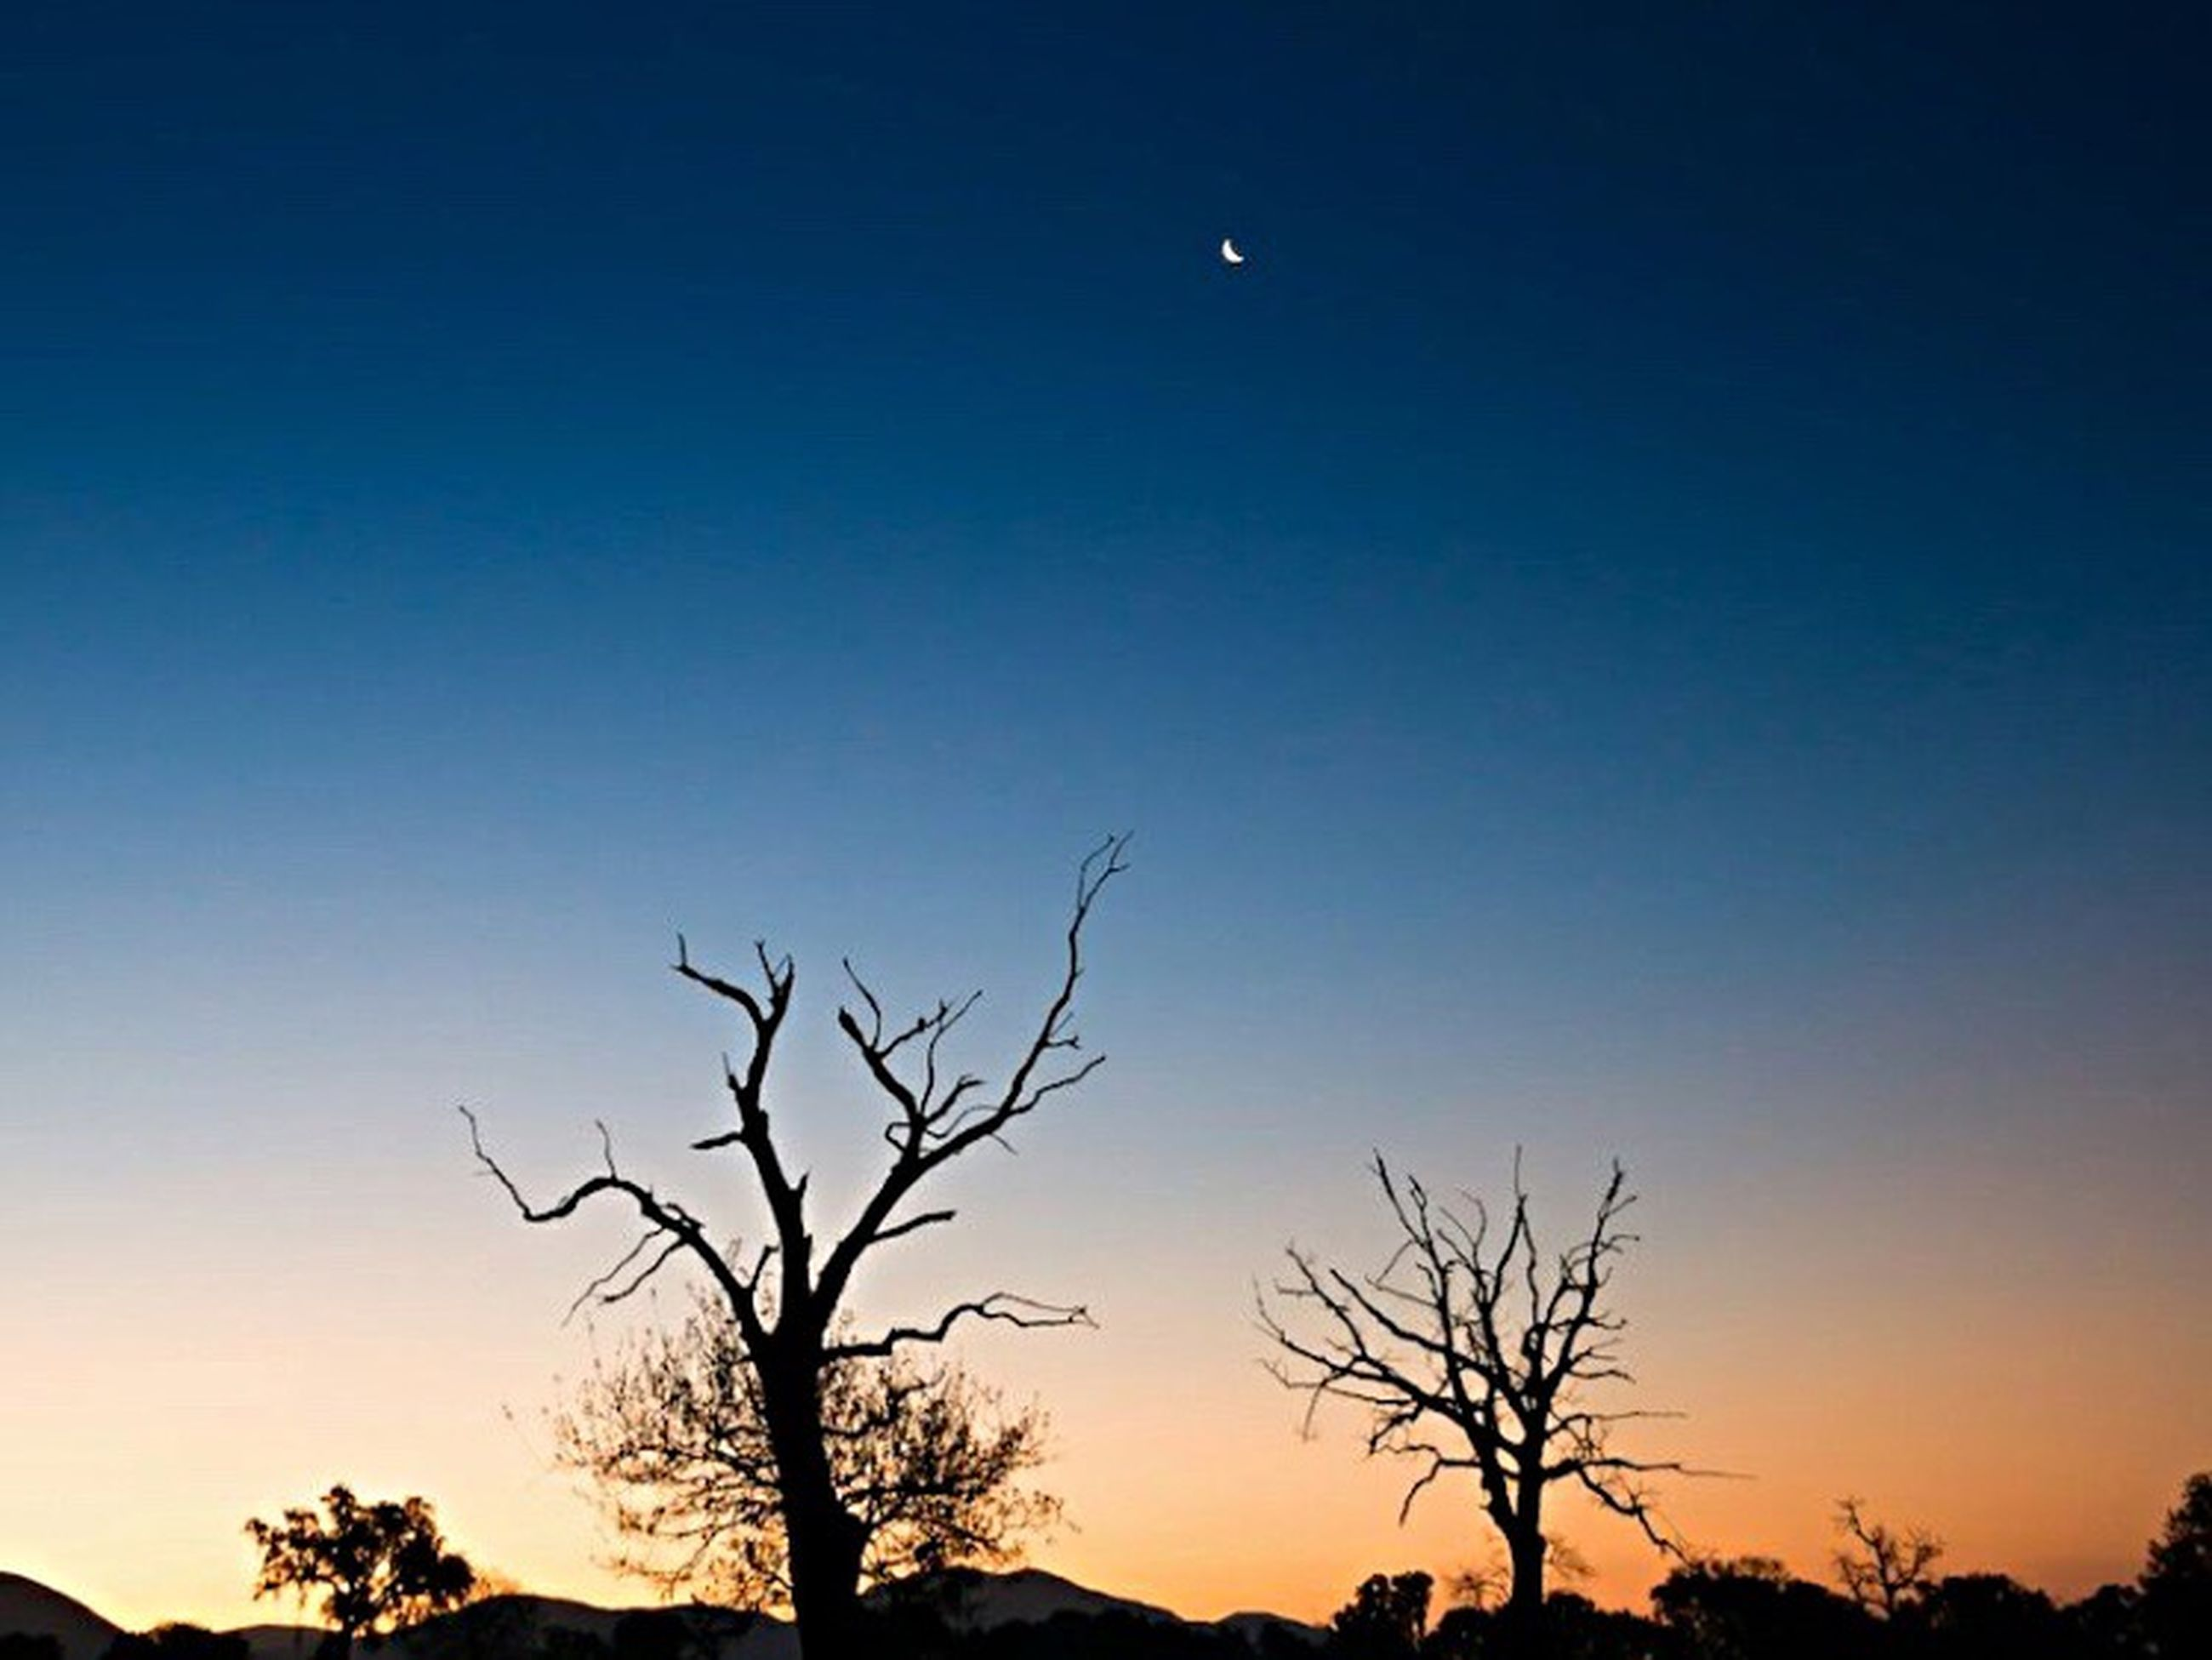 silhouette, bare tree, tree, low angle view, tranquility, clear sky, sunset, scenics, beauty in nature, tranquil scene, branch, nature, moon, blue, copy space, sky, dusk, idyllic, outdoors, no people